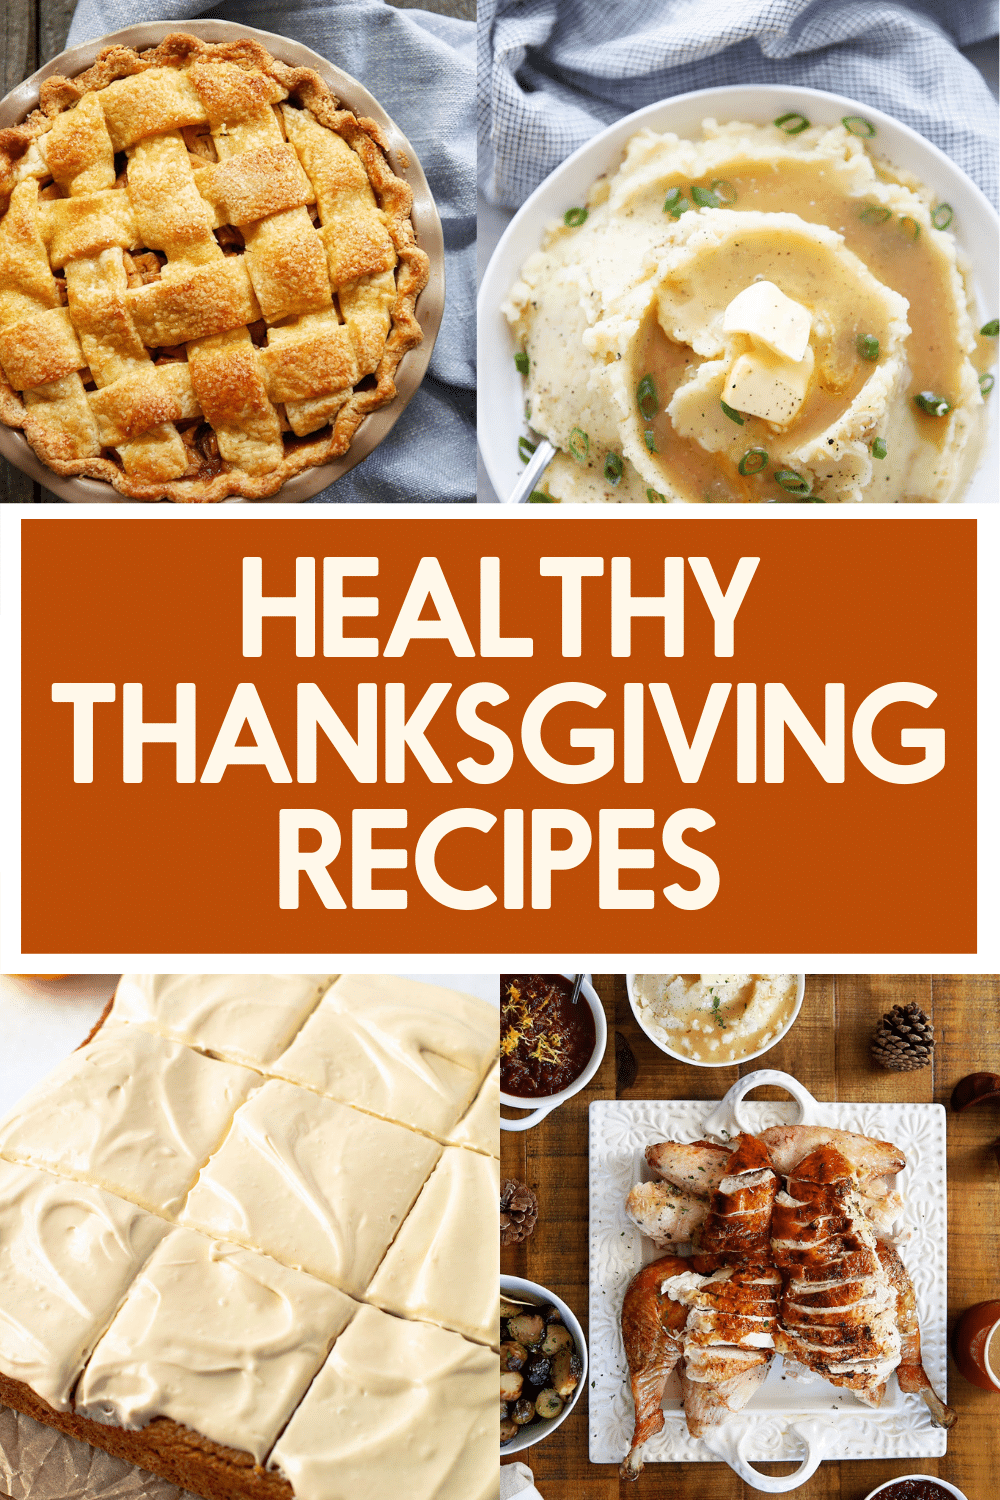 Gluten-Free Thanksgiving Recipes